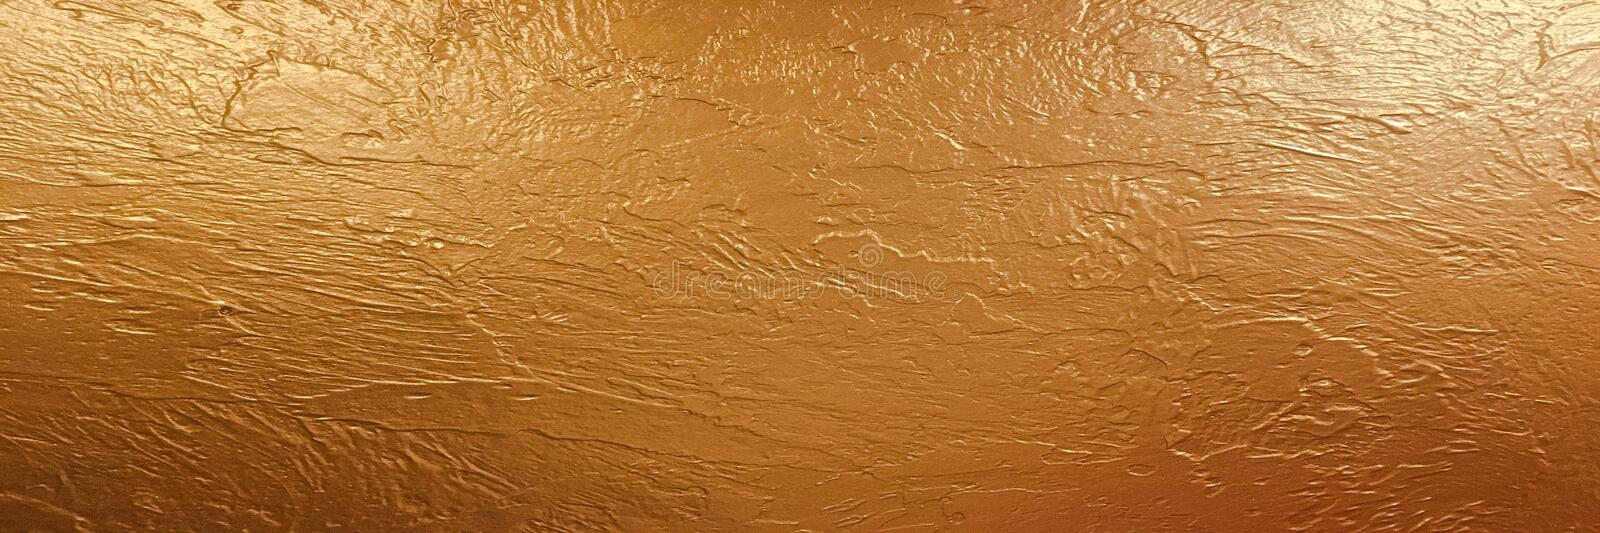 Gold background paper, texture is old vintage distressed solid glitter gold color with rough peeling grunge paint on edges. stock image